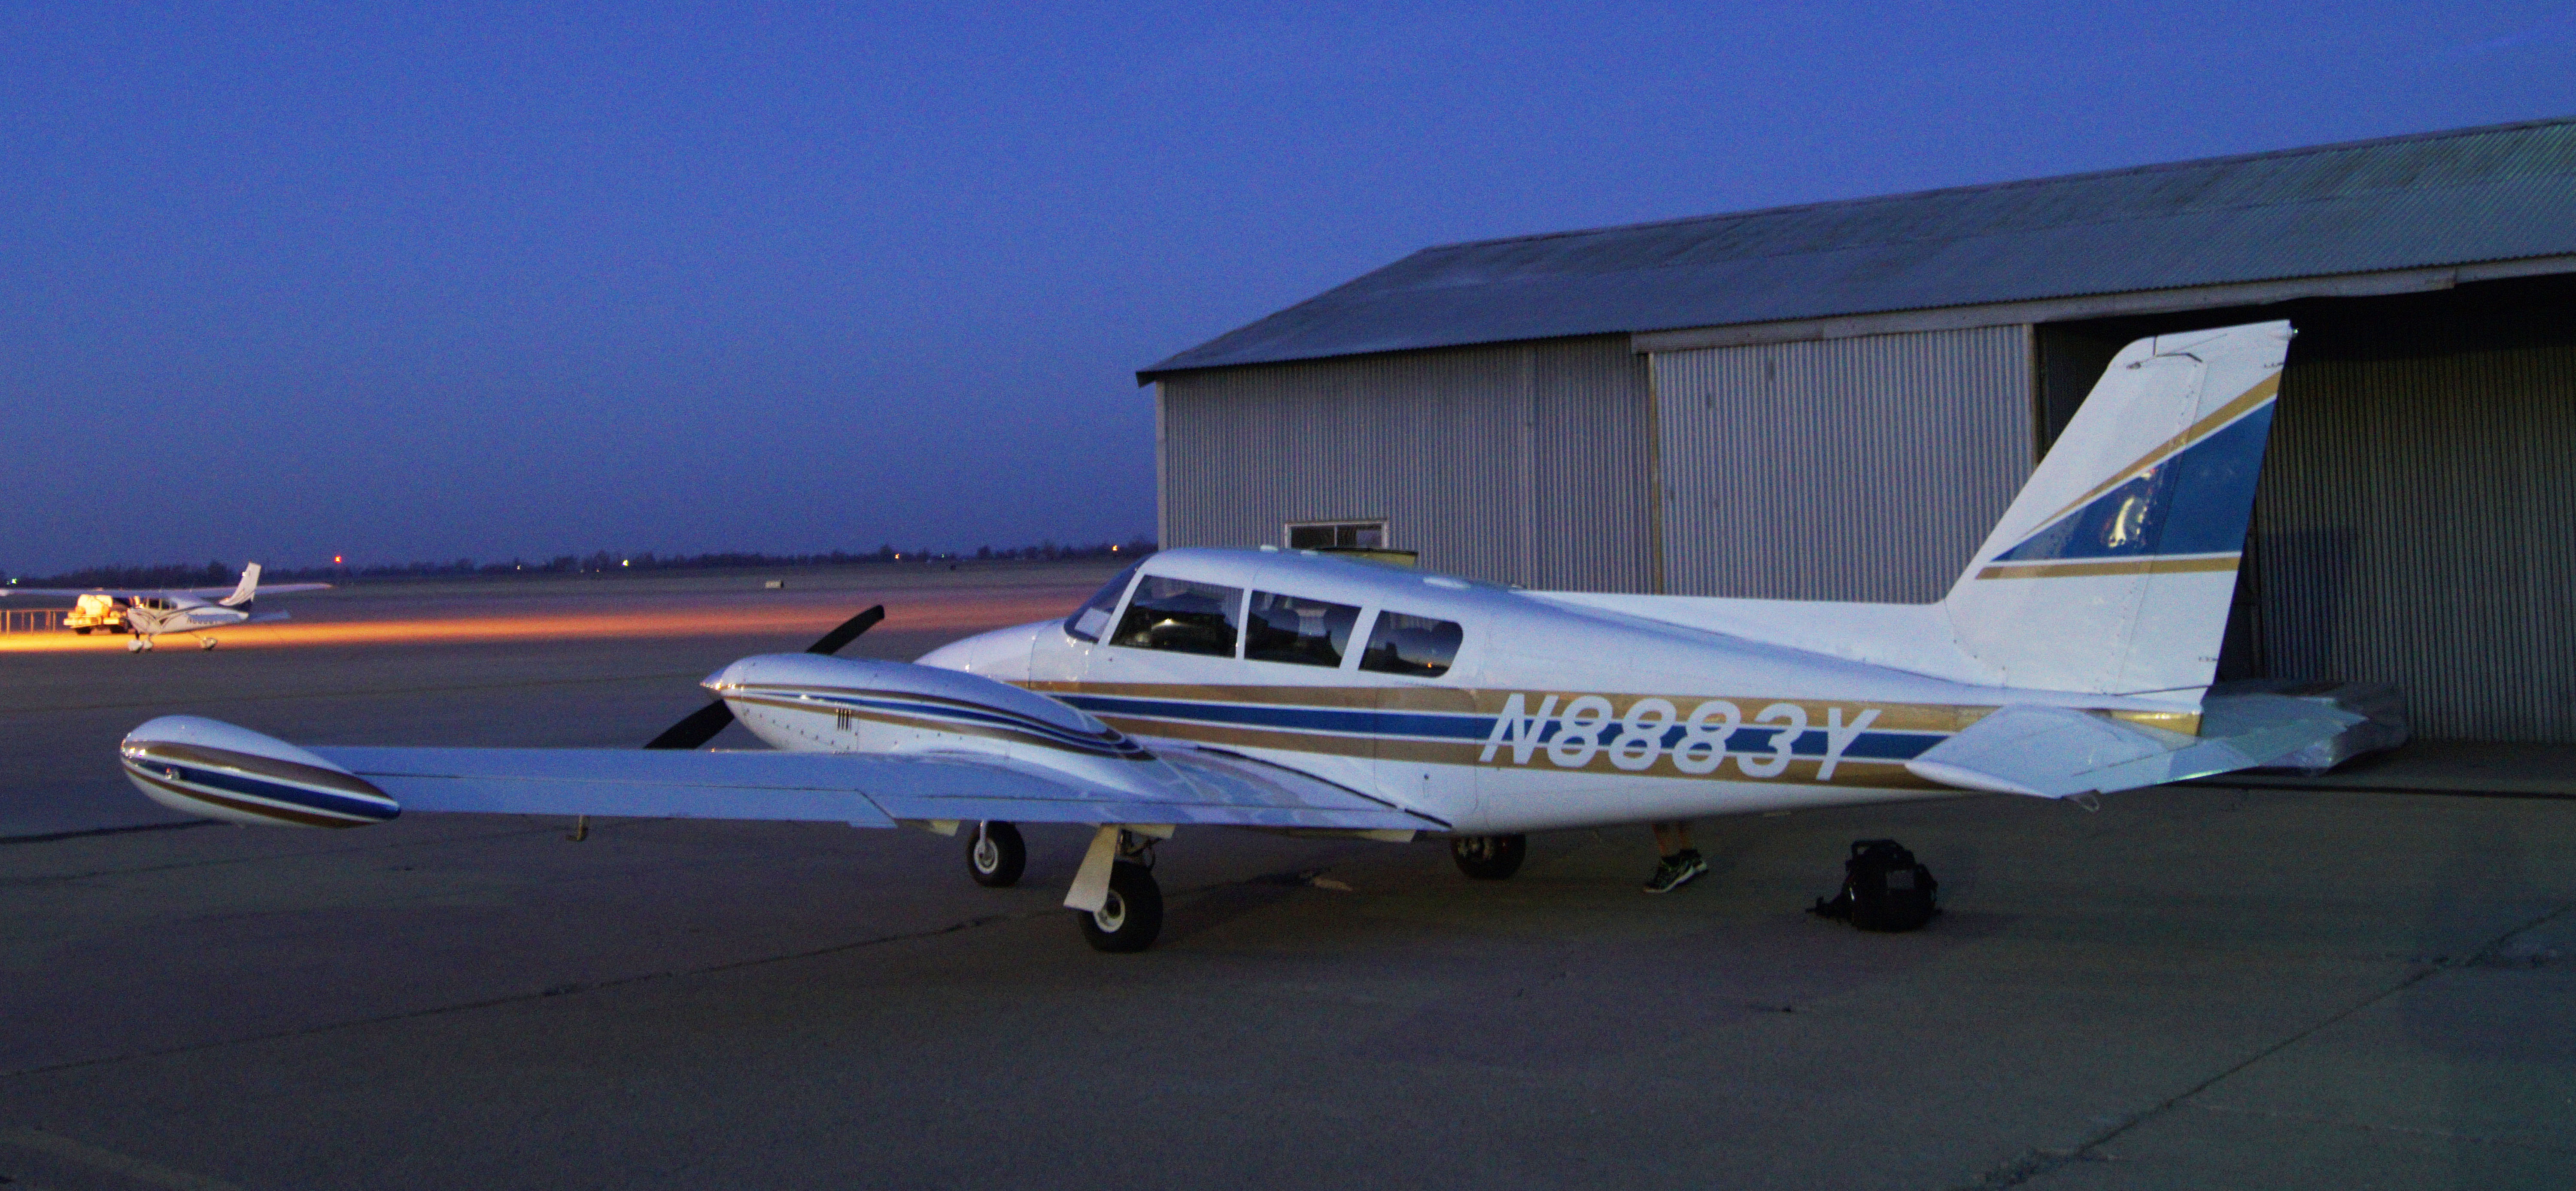 Twin Comanche Turbo >> Aircraft Centerline Aviation Llc